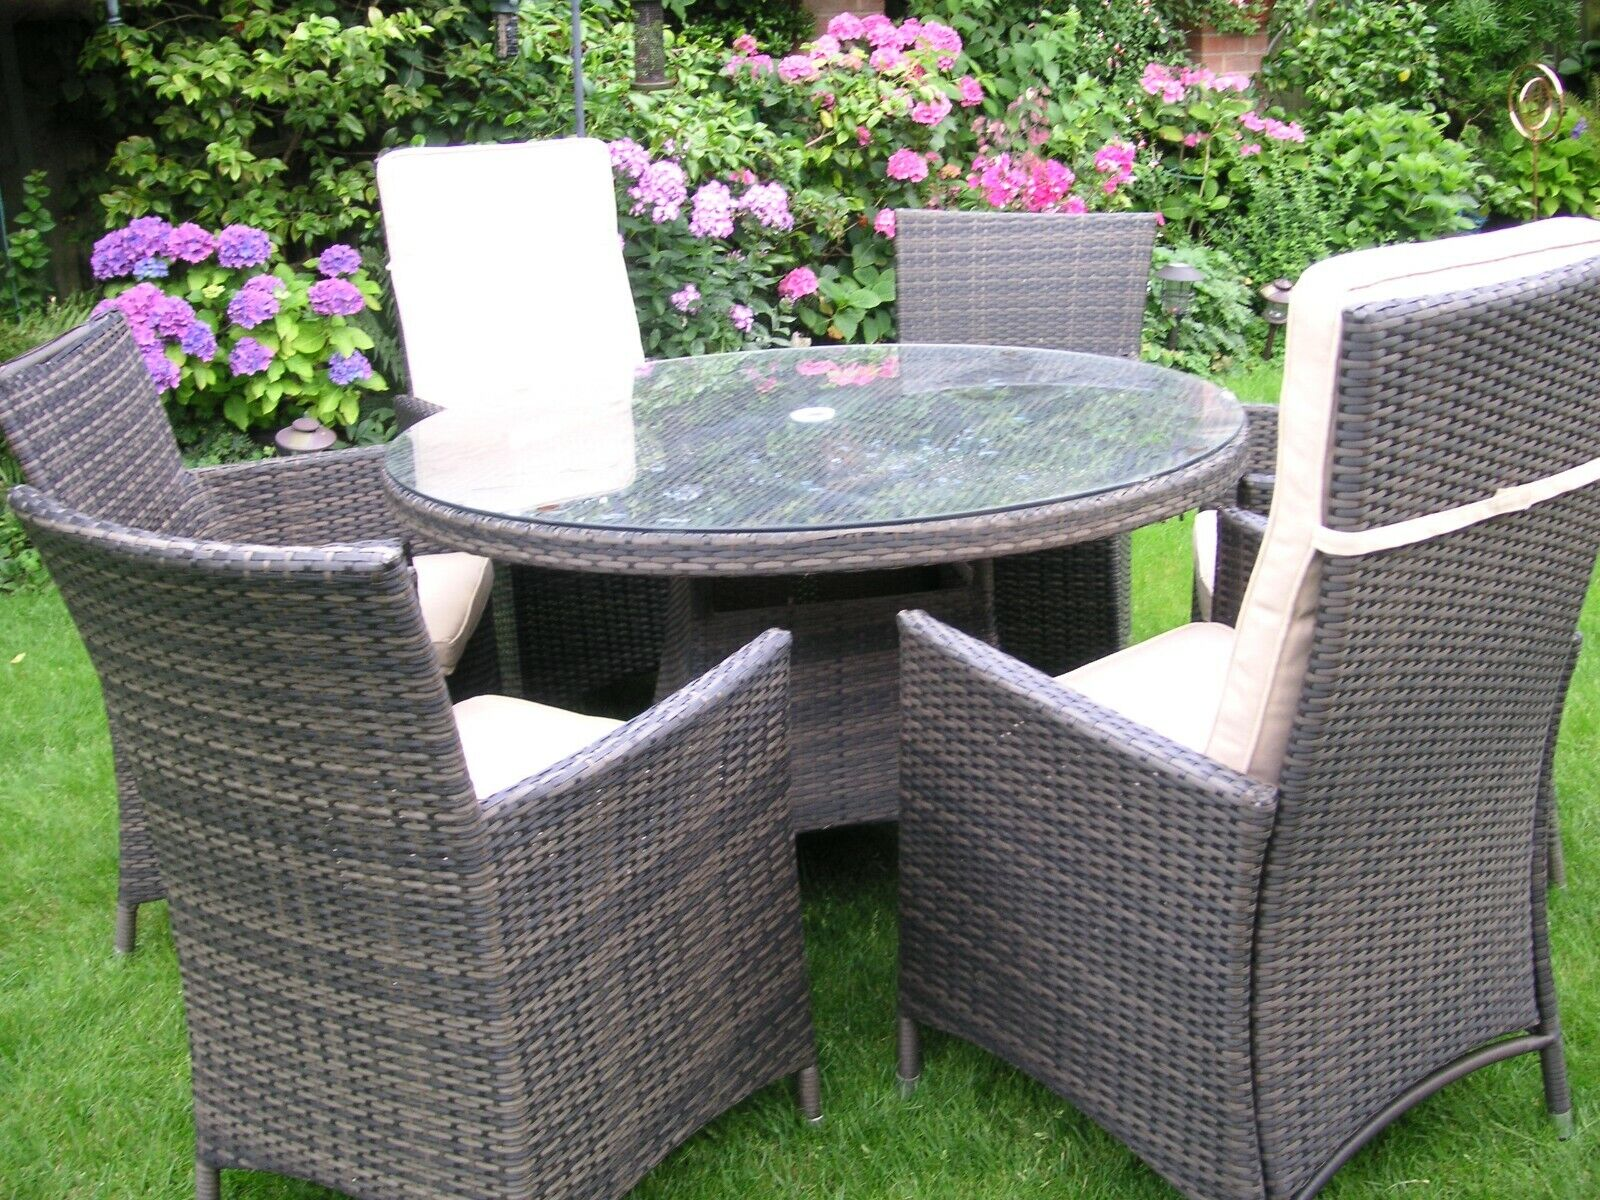 Garden Furniture - 7 Piece Set Rattan Garden Furniture Table 6 Chairs 4 + 2 Recliners with cushions